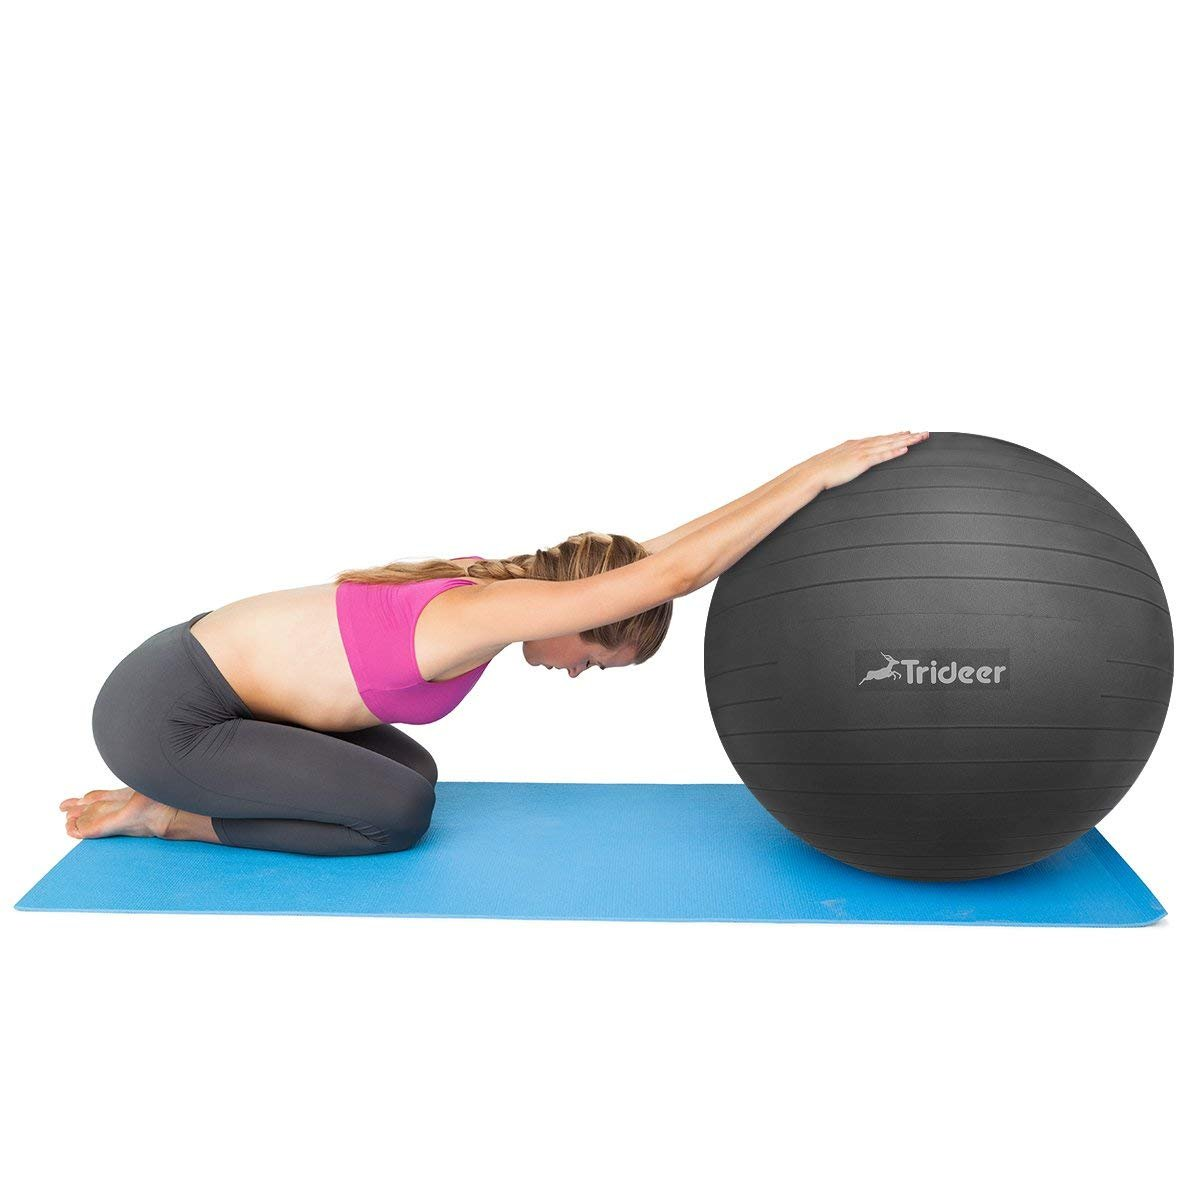 Trideer Exercise Ball (45-85cm) Extra Thick Yoga Ball Chair, Anti-Burst Heavy Duty Stability Ball Supports 2200lbs, Birthing Ball Quick Pump (Office & Home & Gym) (Black, 45cm) by Trideer (Image #9)